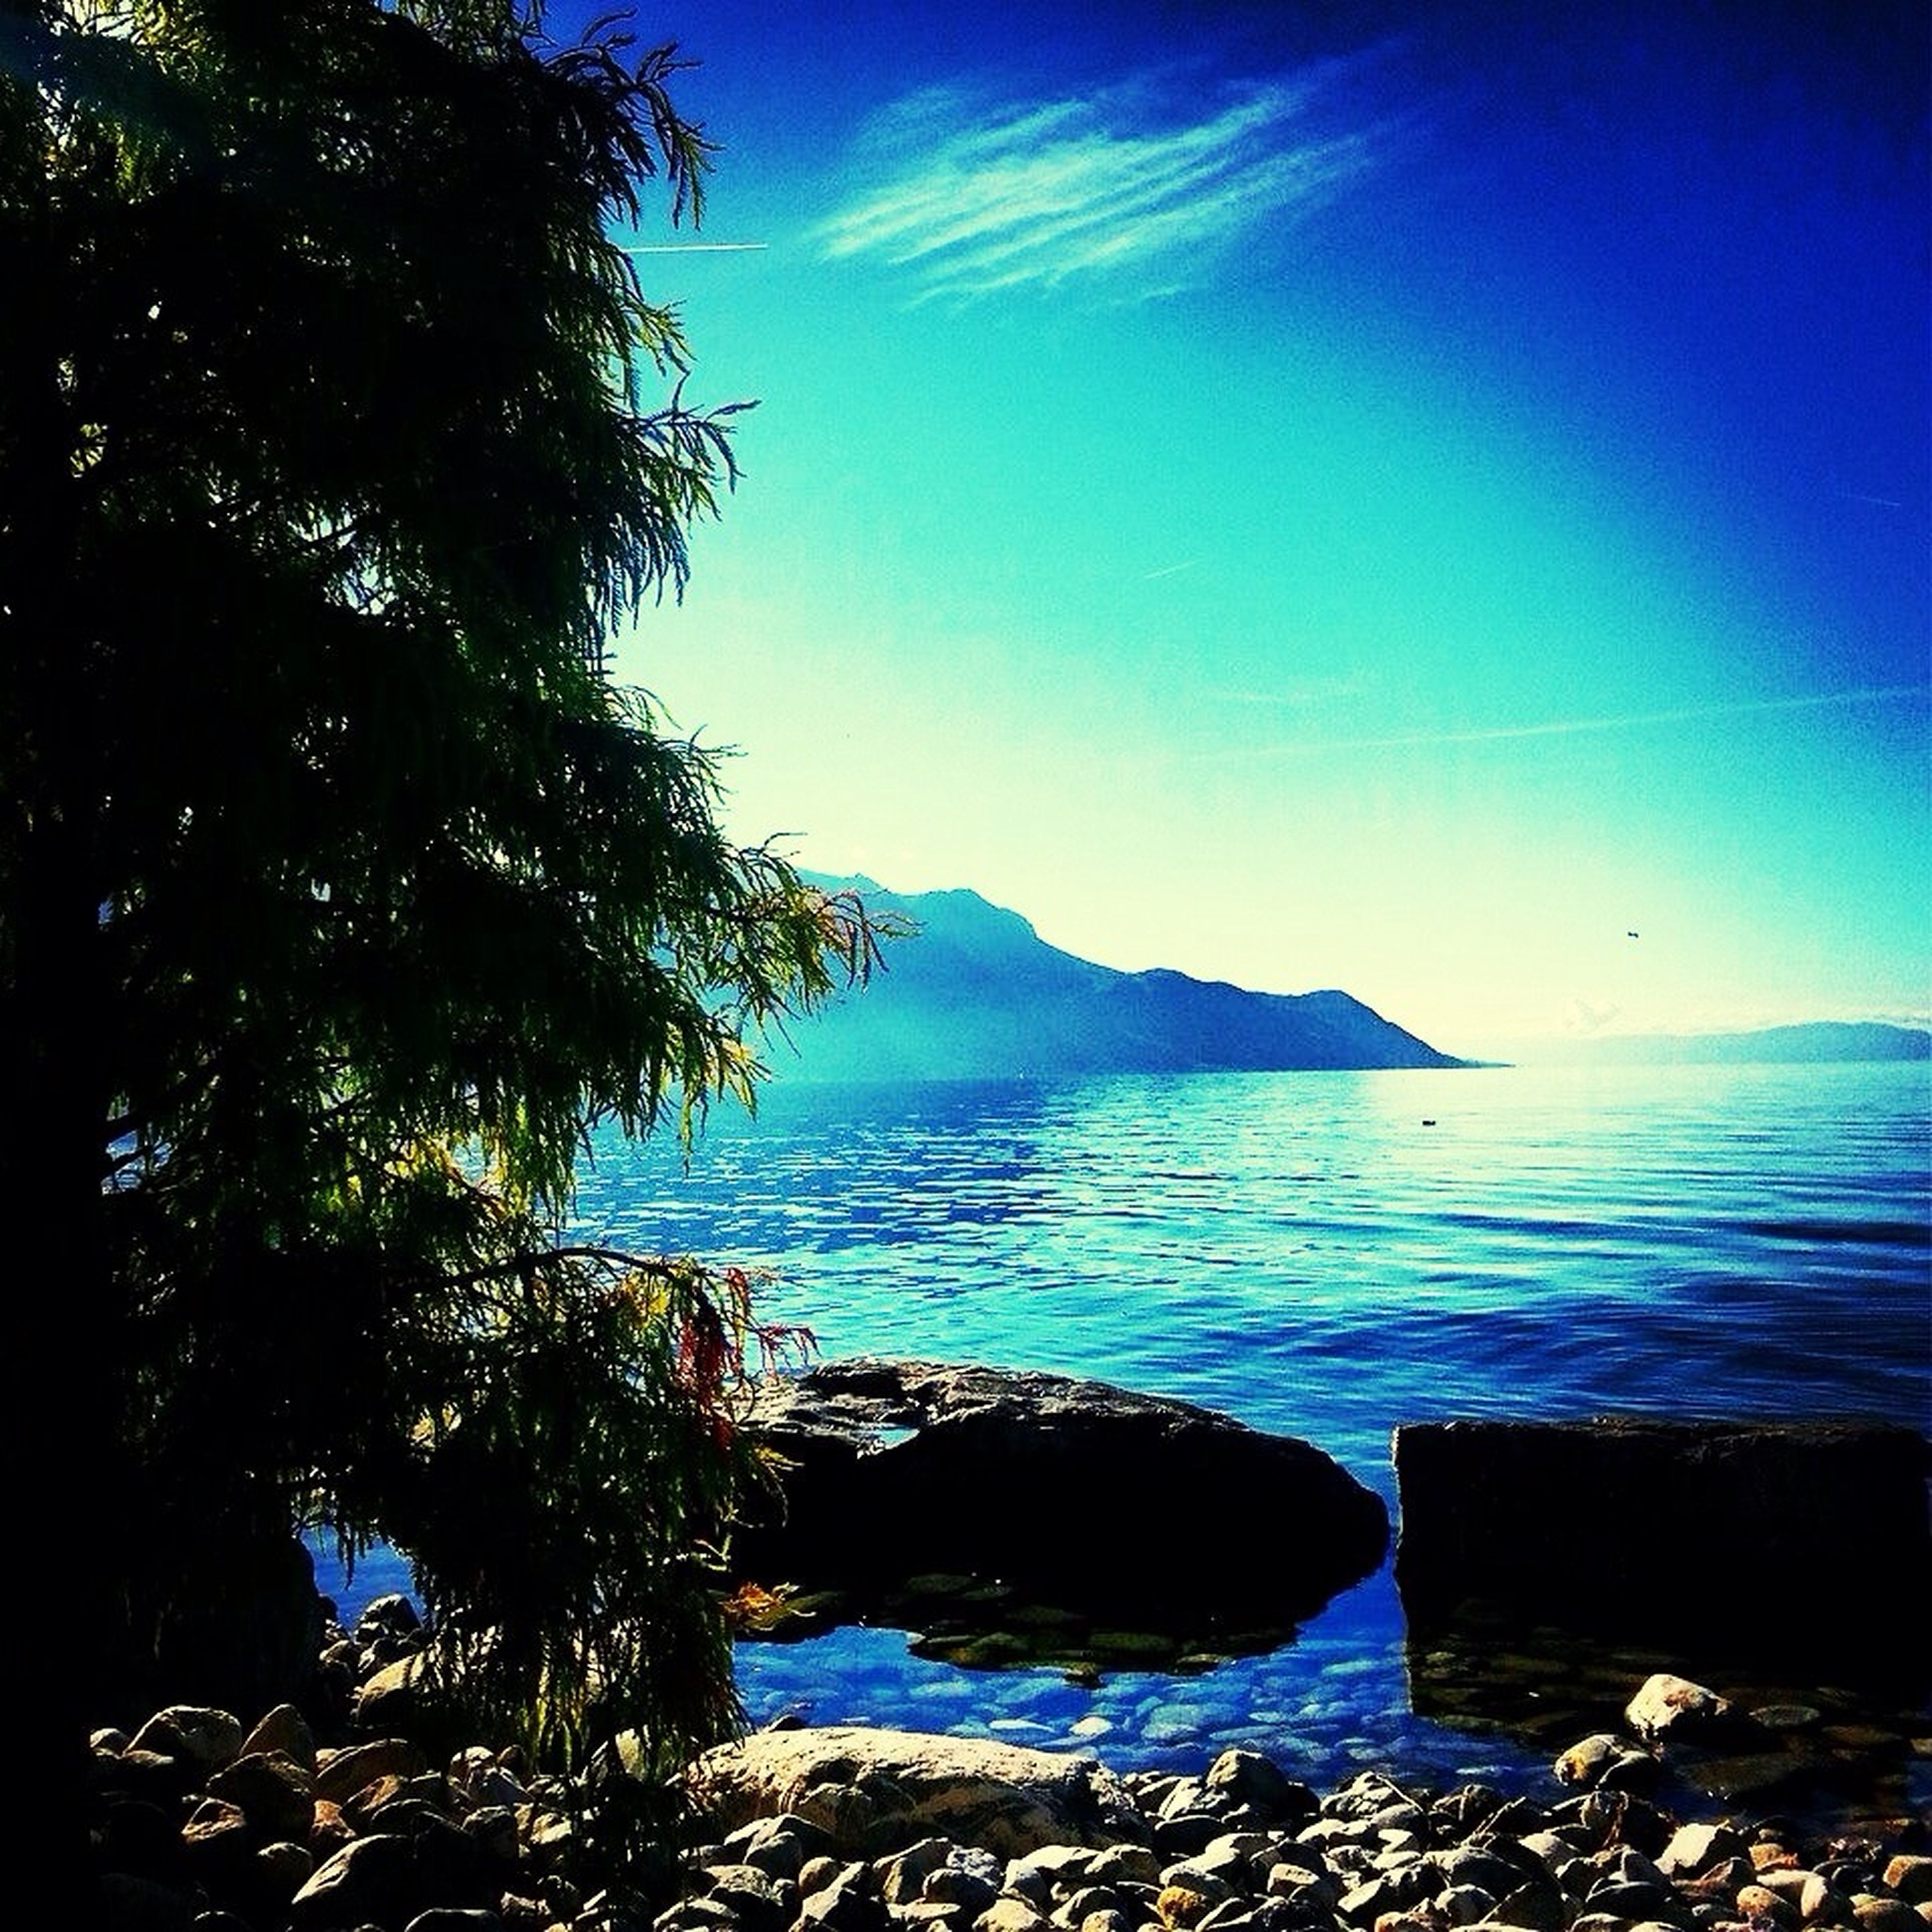 water, blue, sea, tranquil scene, scenics, tranquility, beauty in nature, sky, nature, tree, horizon over water, mountain, idyllic, beach, clear sky, shore, sunlight, coastline, rock - object, outdoors